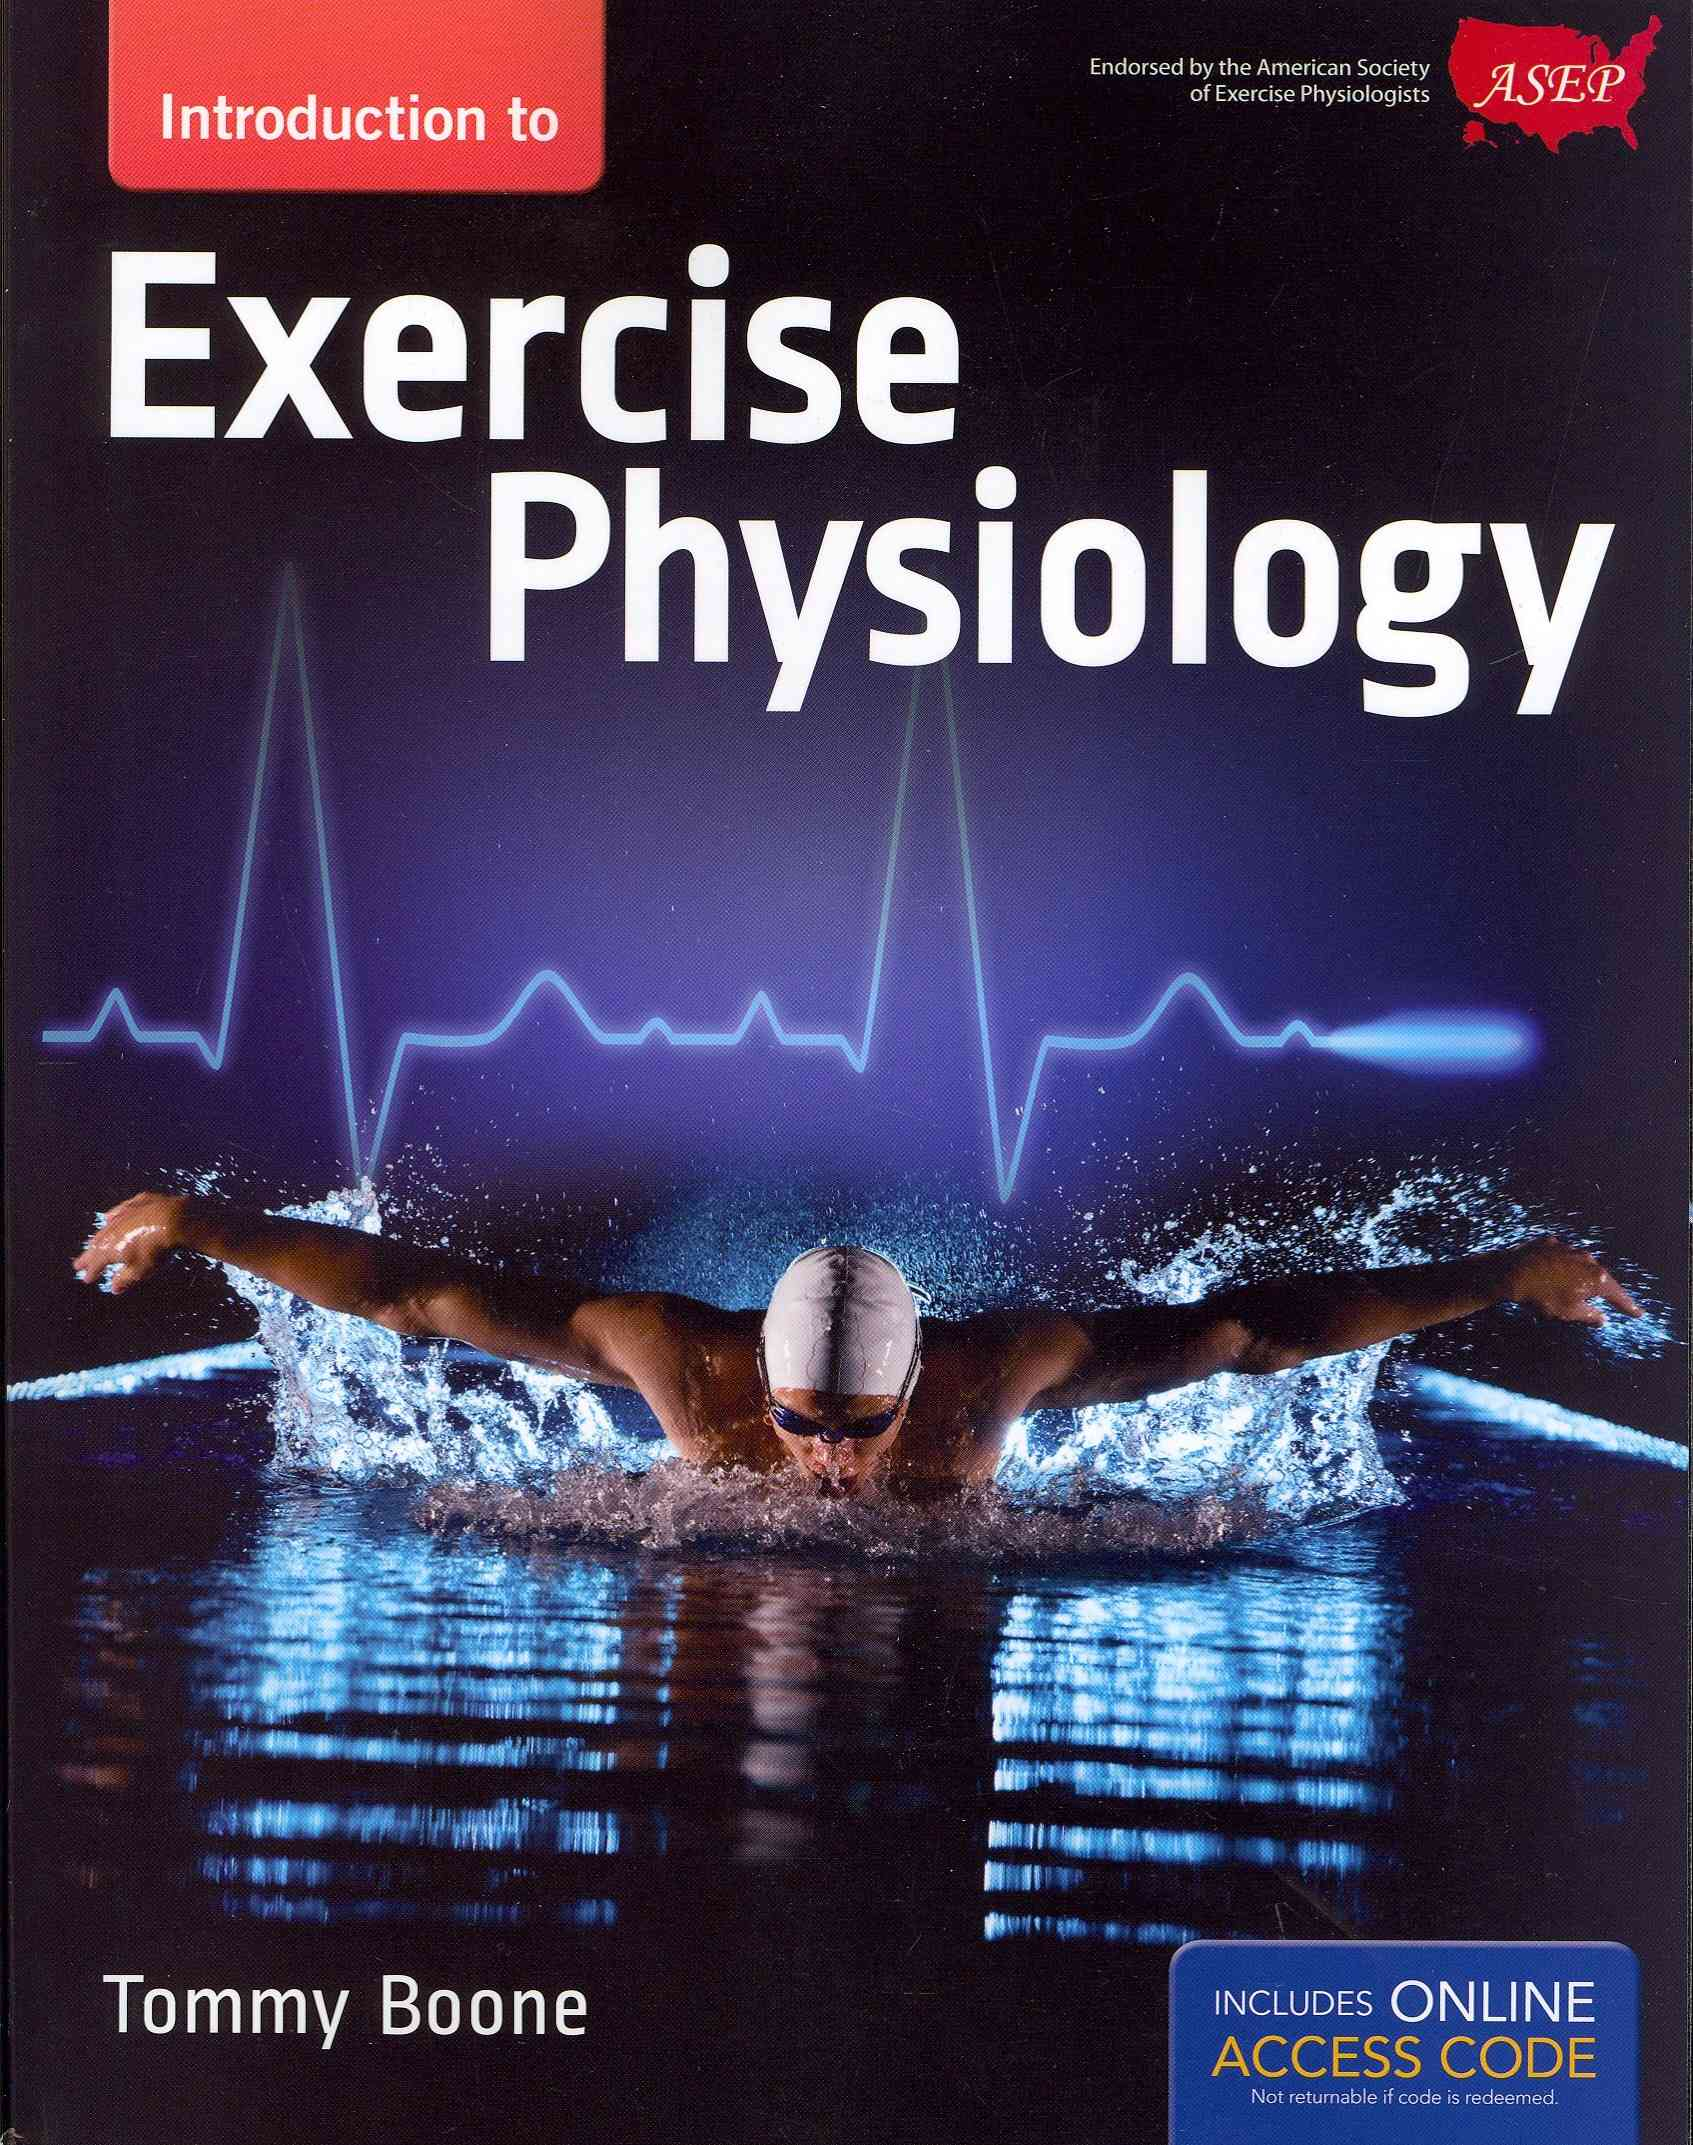 Introduction to Exercise Physiology By Boone, Tommy